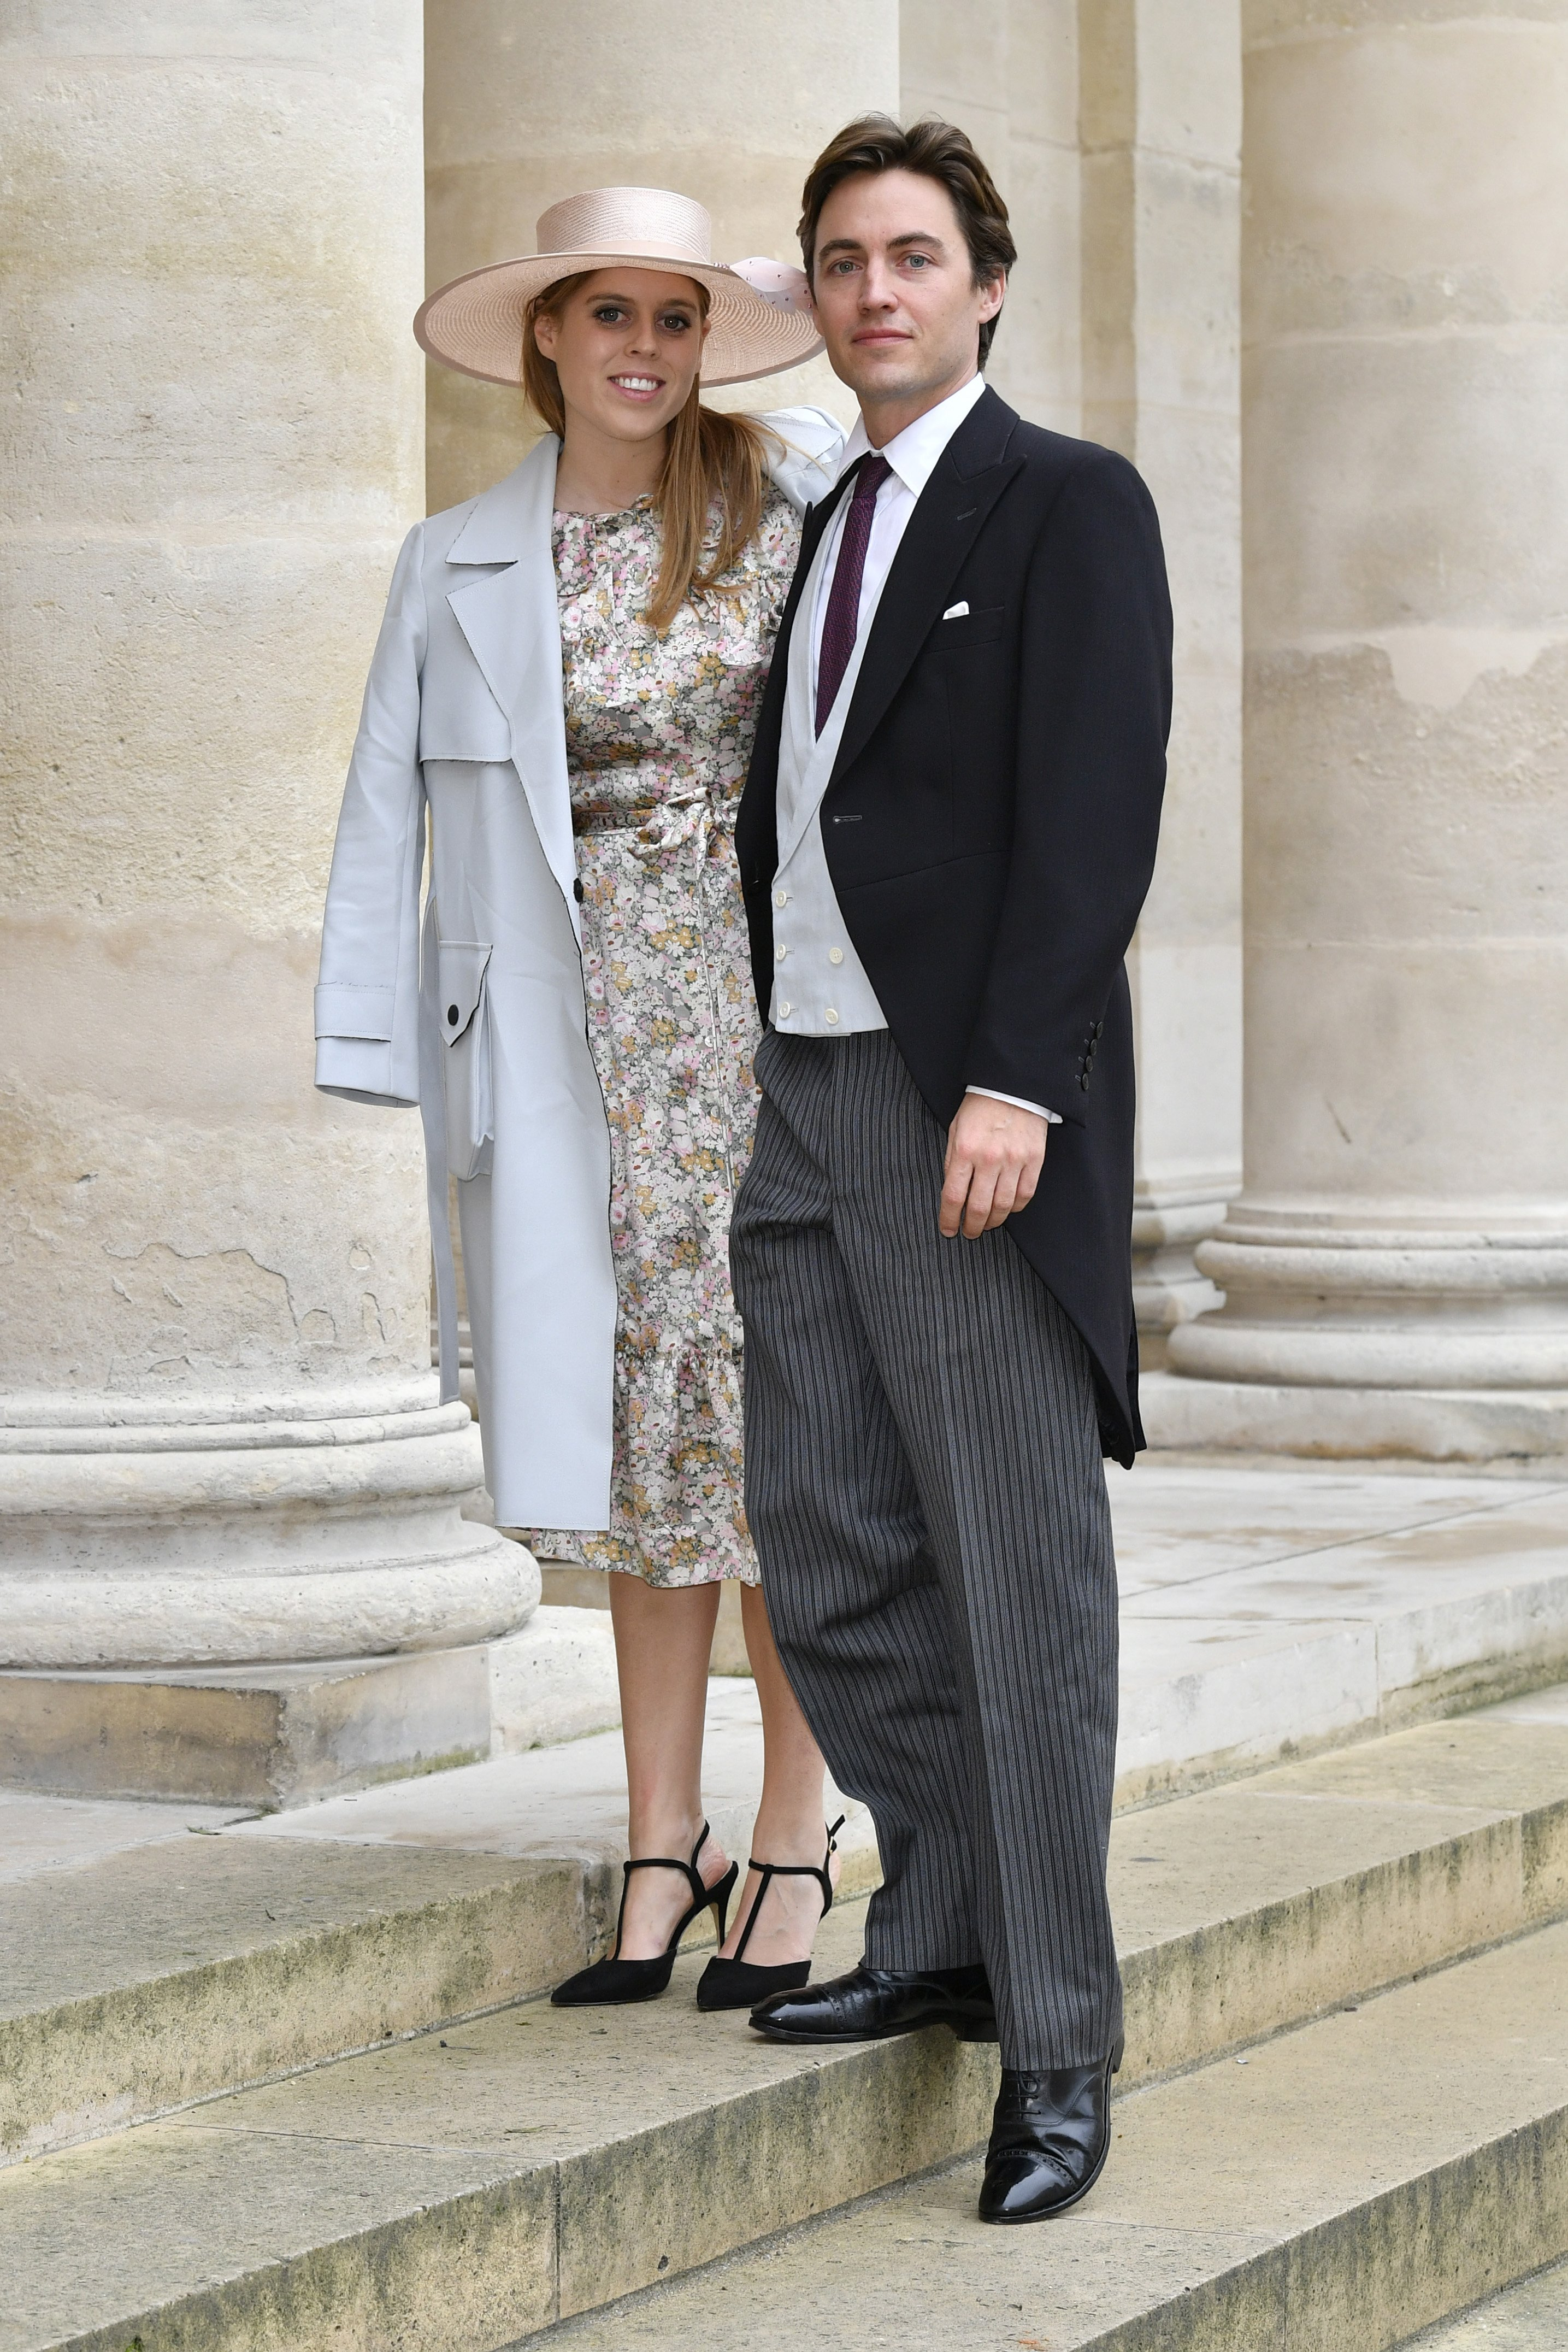 Princess Beatrice and Edoardo Mapelli Mozzi attend the Wedding of Prince Jean-Christophe Napoleon and Olympia Von Arco-Zinneberg at Les Invalides on October 19, 2019 in Paris, France | Photo: Getty Images